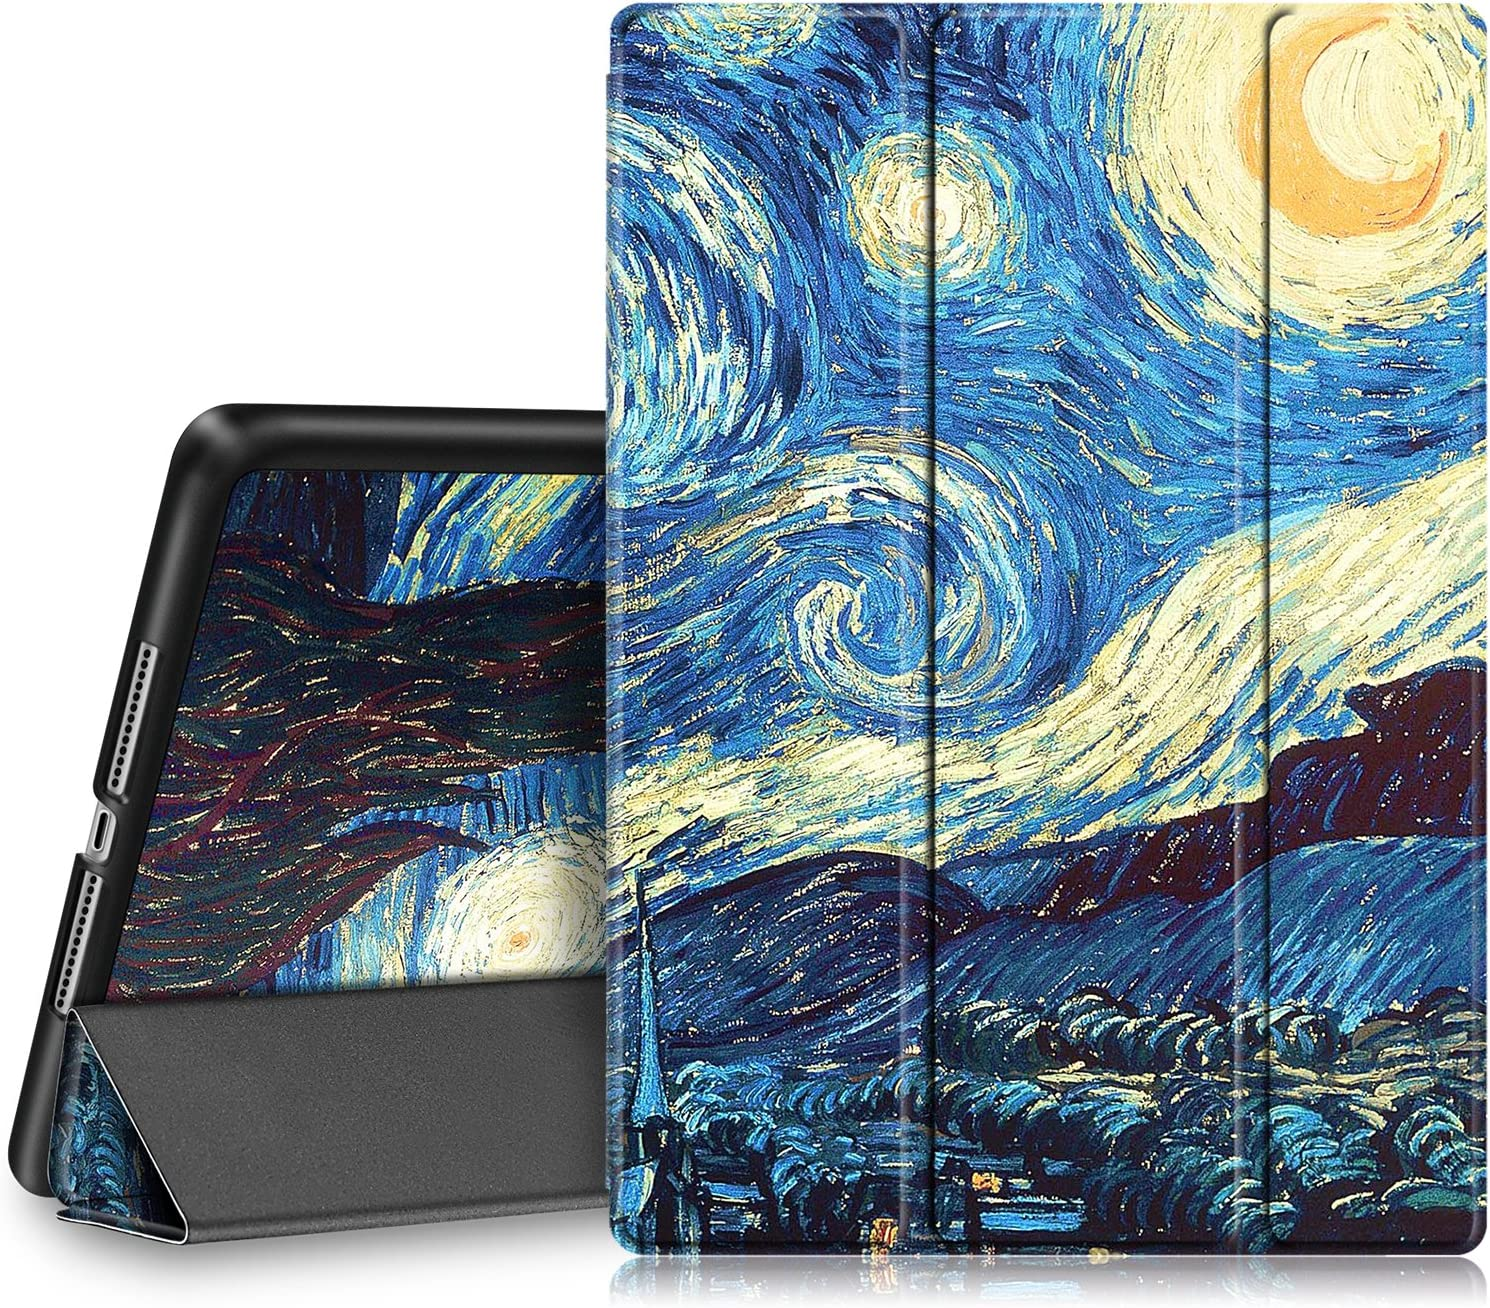 Fintie Case for iPad 9.7 2018/2017 - Lightweight Slim Shell Standing Cover with Auto Wake/Sleep Feature for iPad 6th / 5th Gen 9.7 Inch Tablet, Starry Night